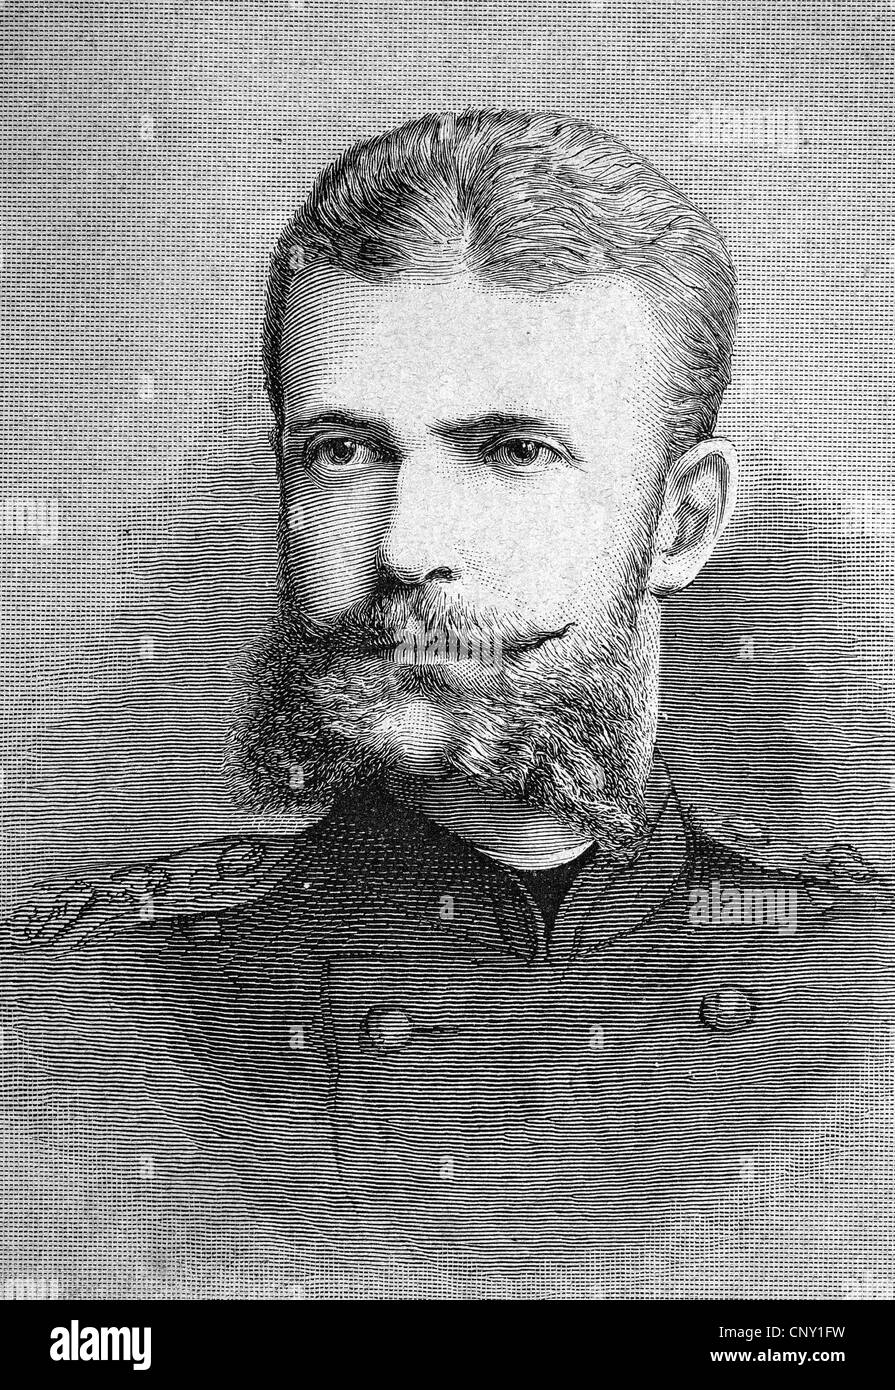 Grand Duke Sergei Alexandrovich of Russia, 1857 - 1905, member of the Russian government from the House of Romanov - Stock Image